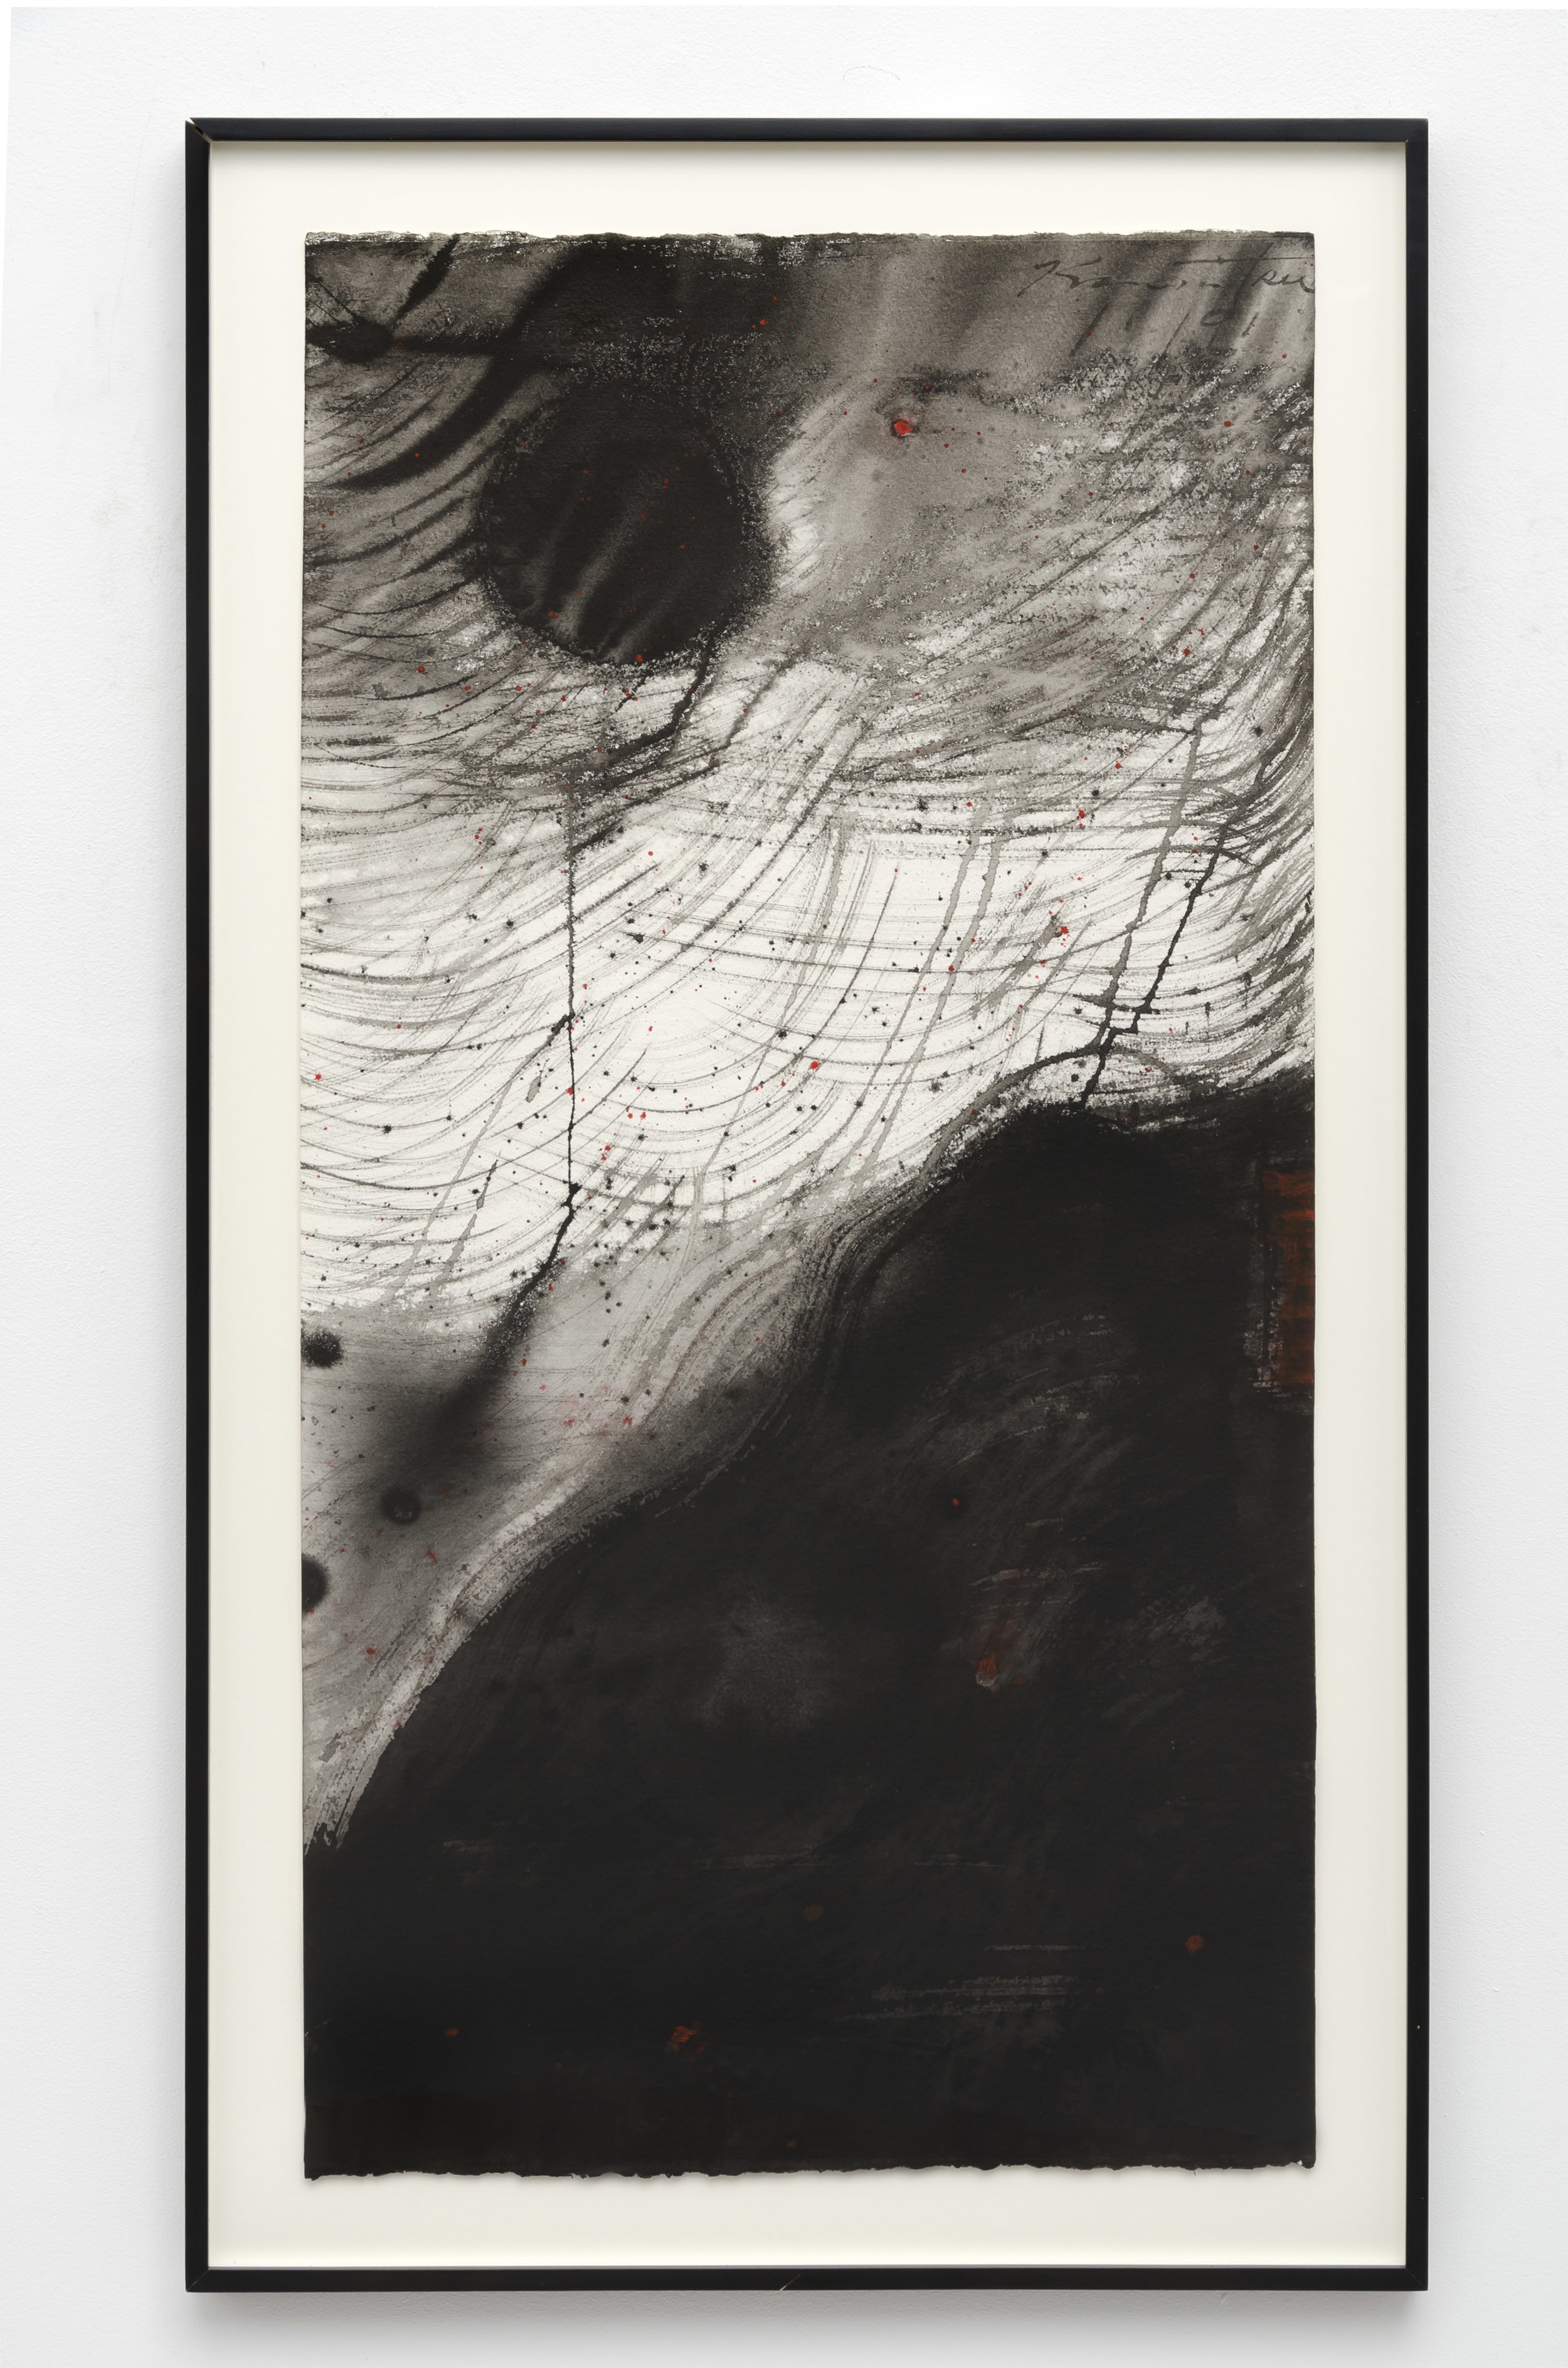 Untitled 1-91   1991  sumi on paper  45 1/4 x 25 3/8 inches, 114.9 x 64.5 centimeters